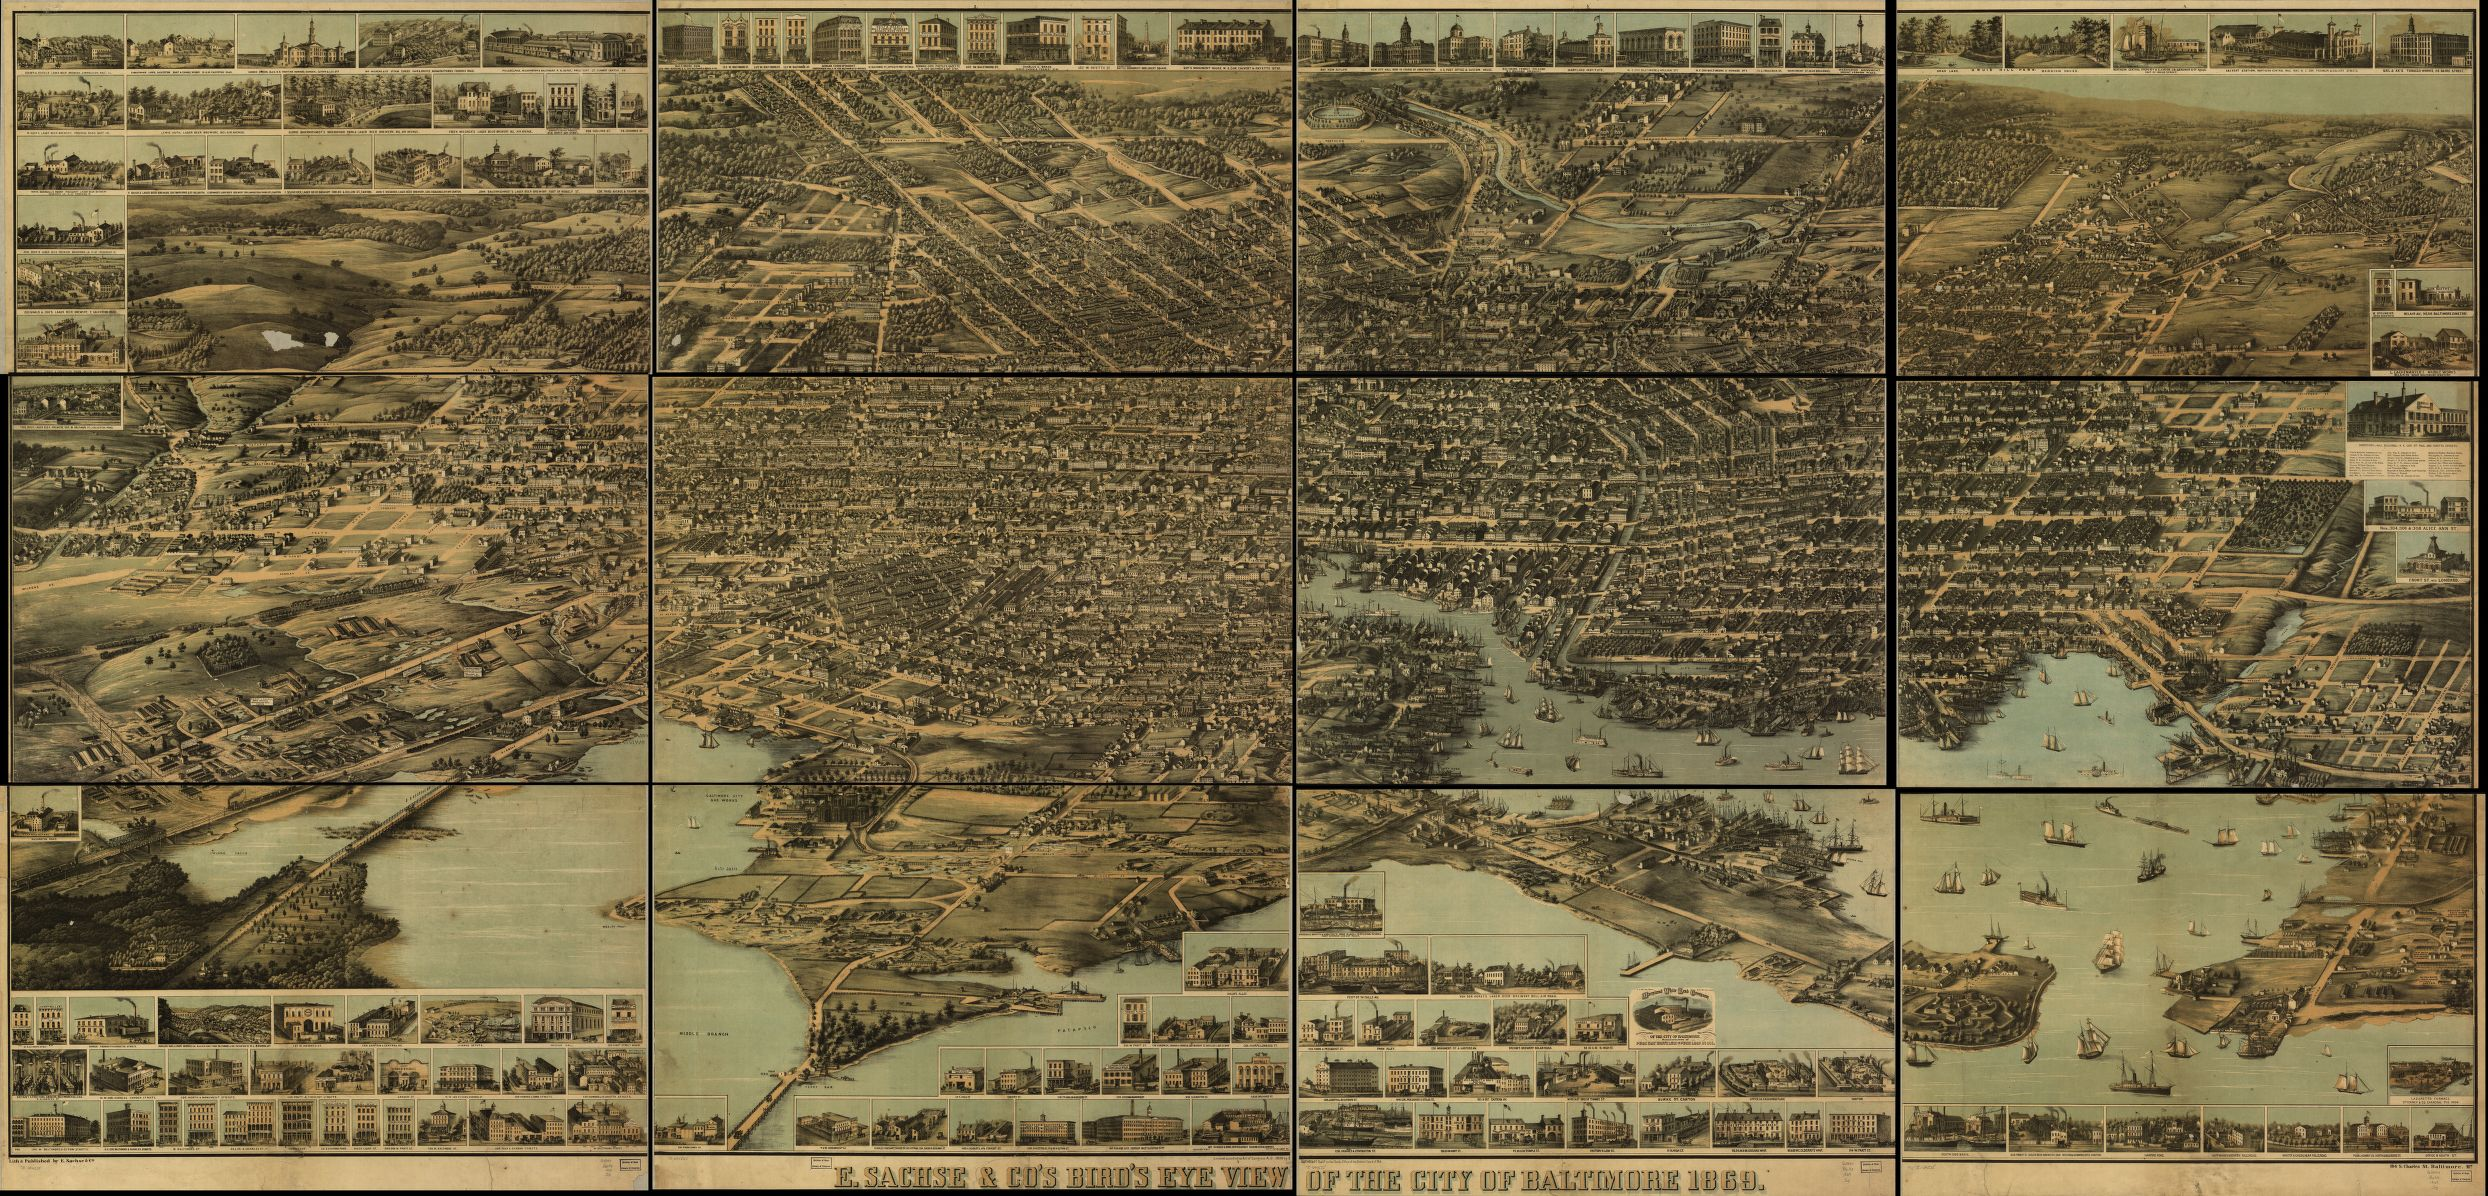 Bird's Eye View of Baltimore in 1870